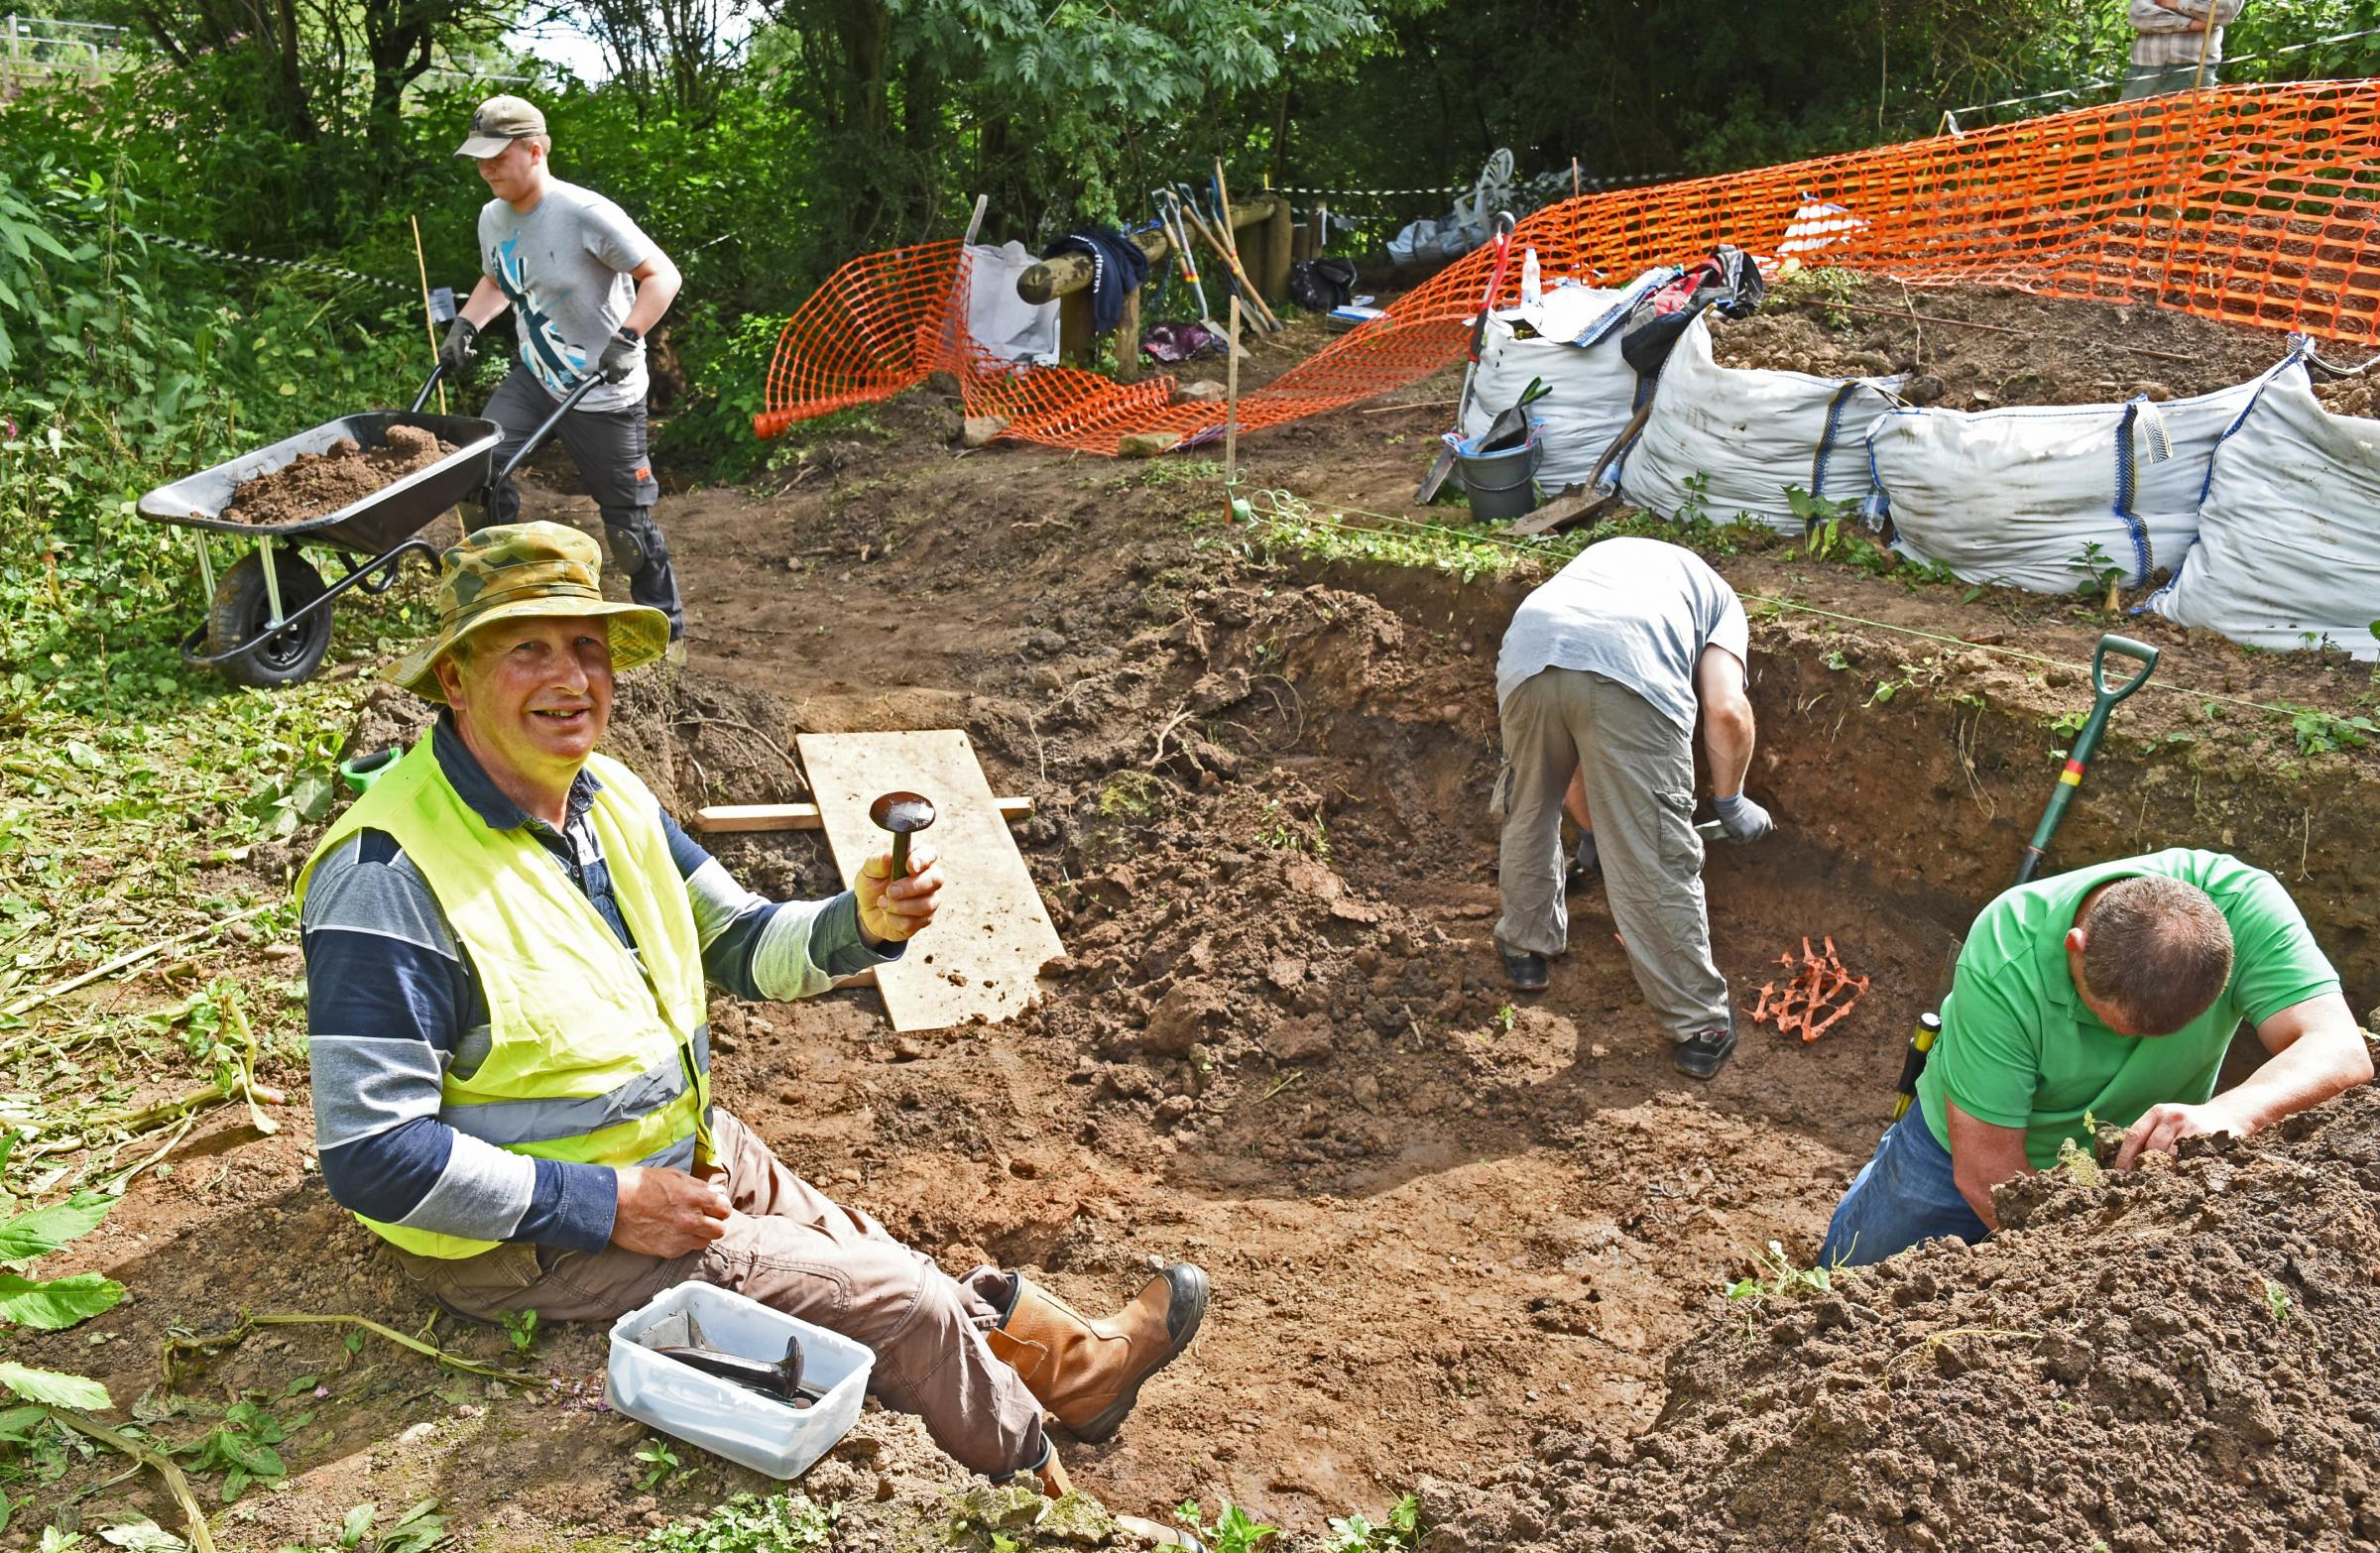 FLASHBACK: Chas Jones, pictured at a previous dig in Fulford last year